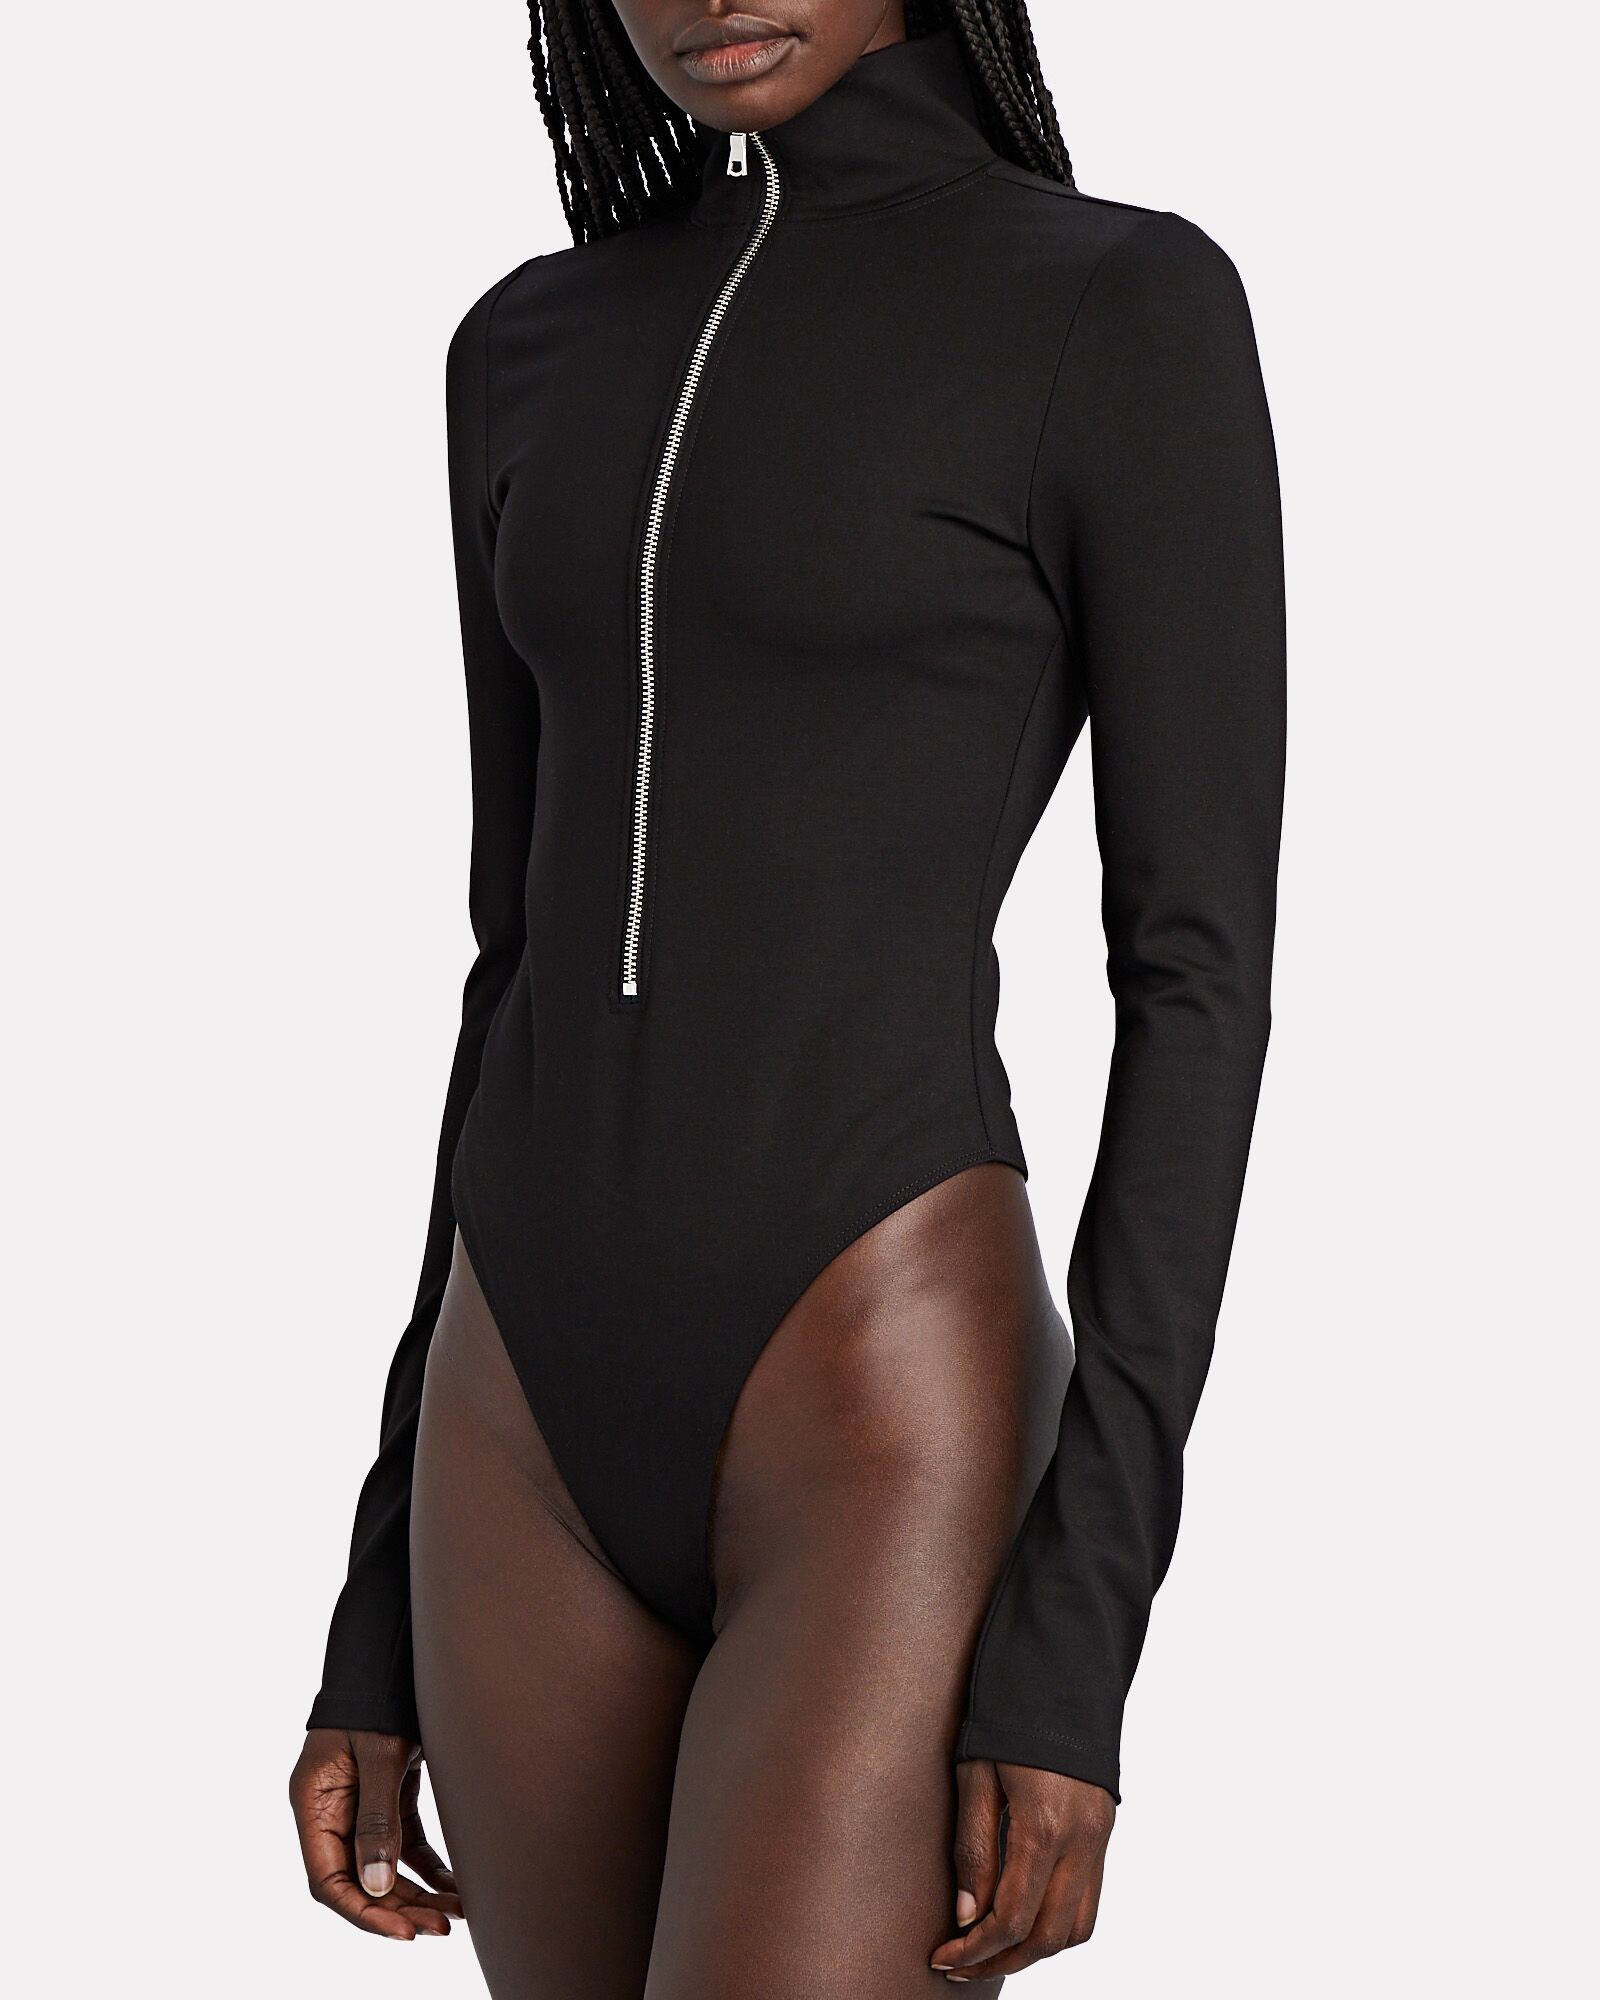 Zip Front High Neck Bodysuit, , hi-res